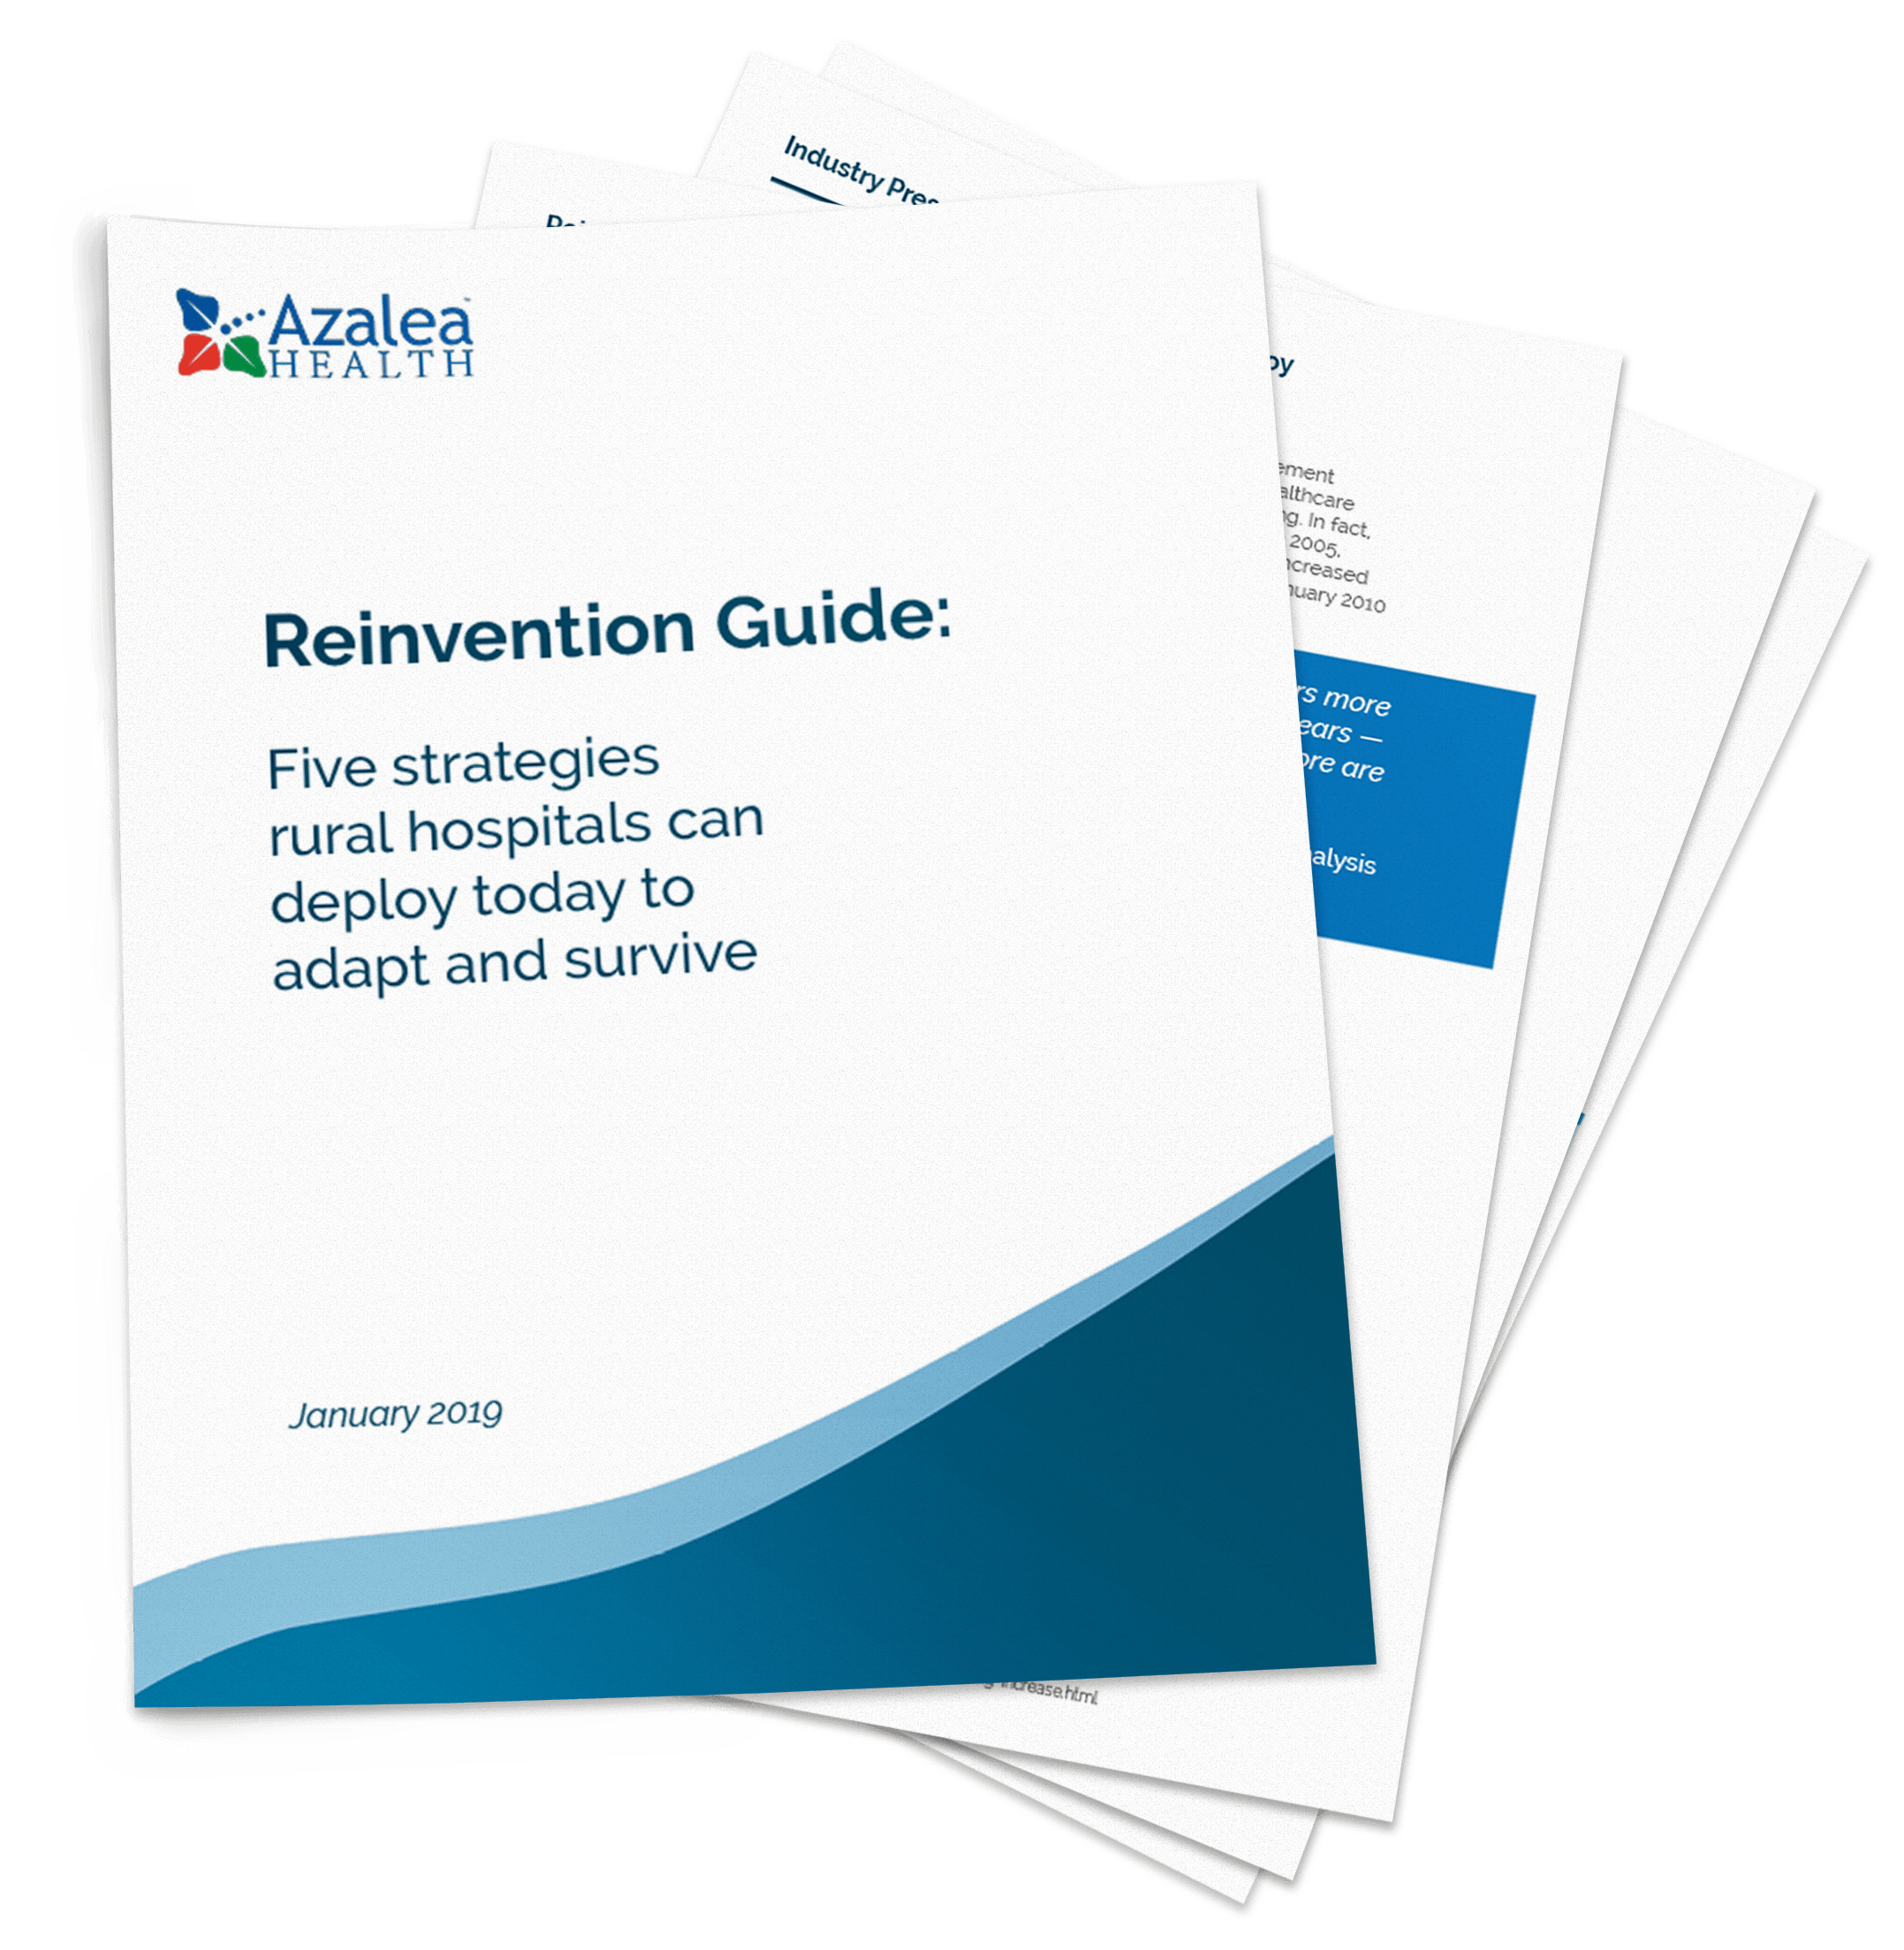 Reinvention Guide